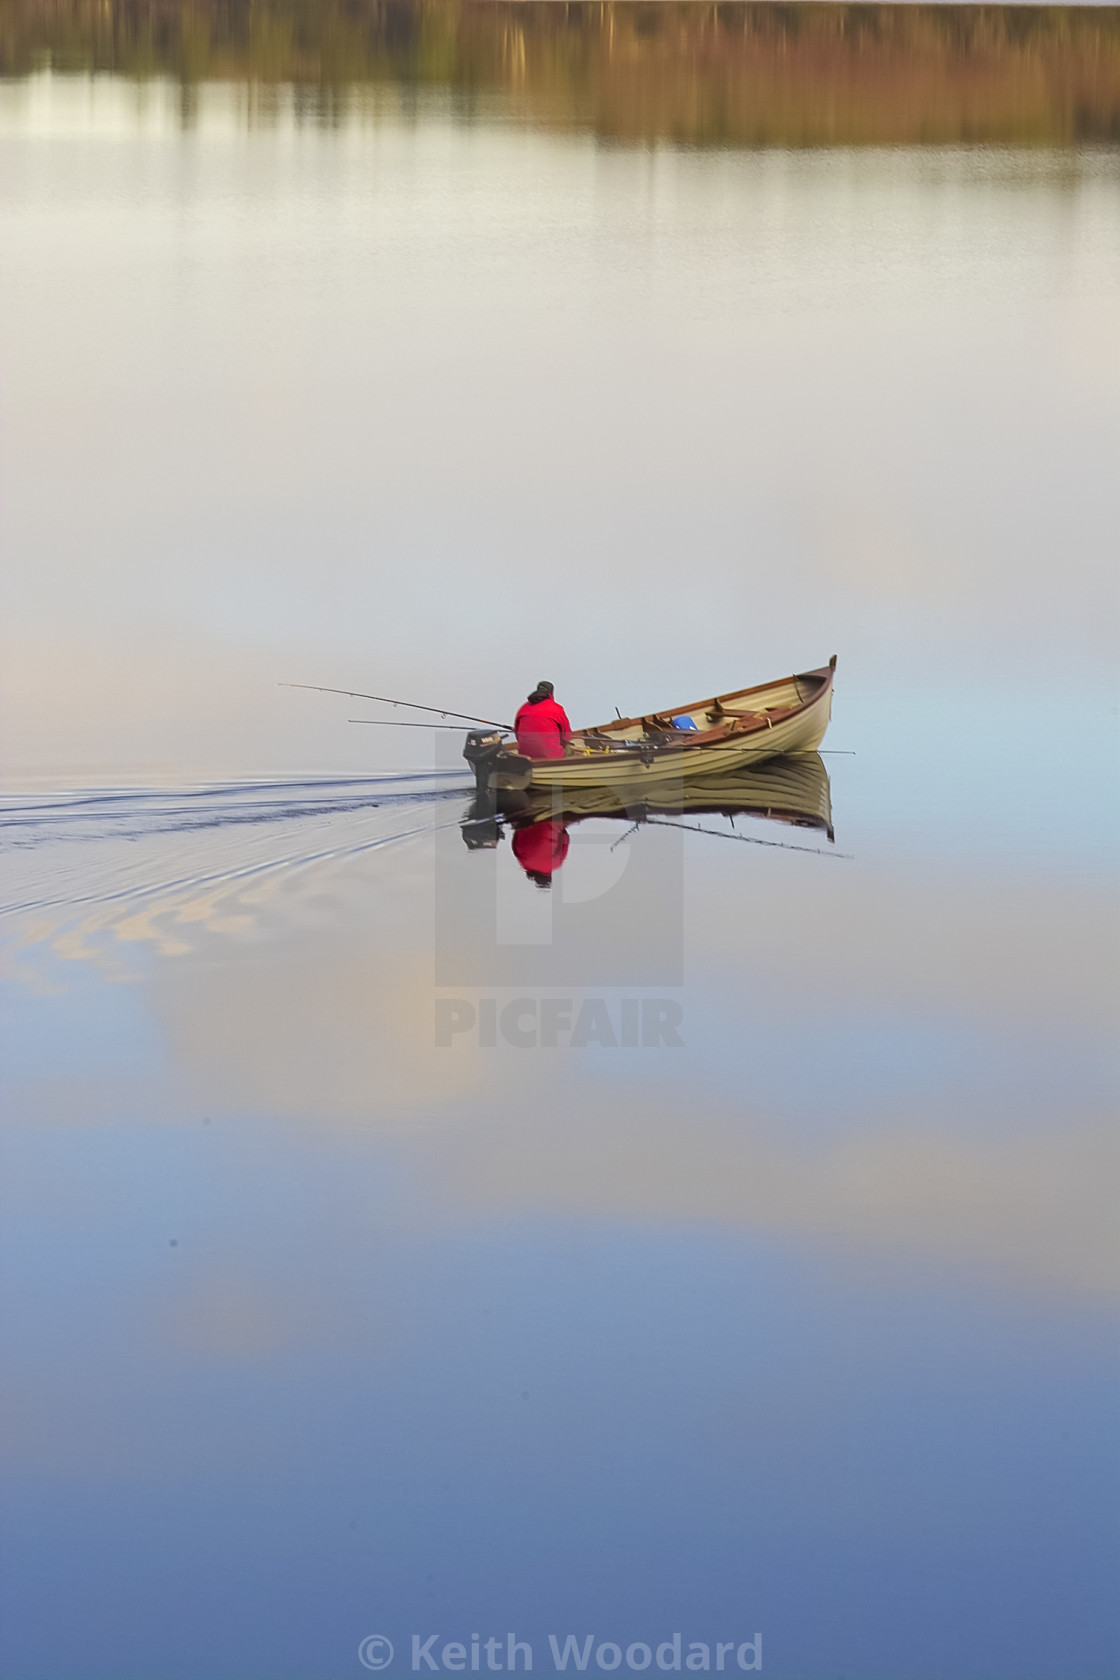 Fishing boat on a Lake co Kerry Ireland - License, download